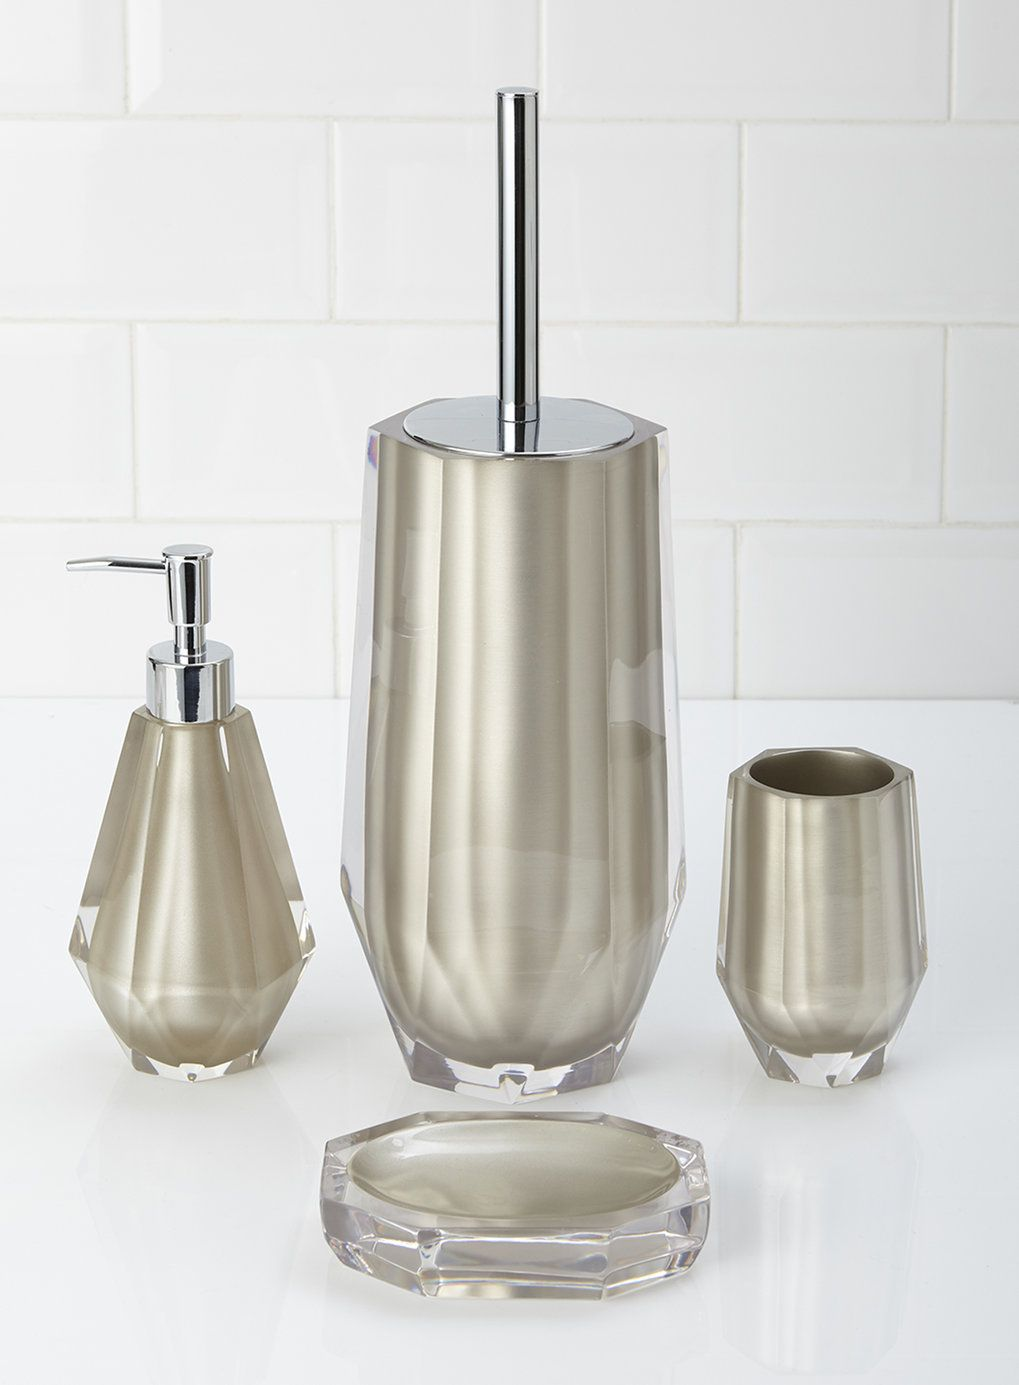 Dkny Bathroom Accessories Bhs Bronze Resin Teardrop Set Soap Dispenser Toilet Brush